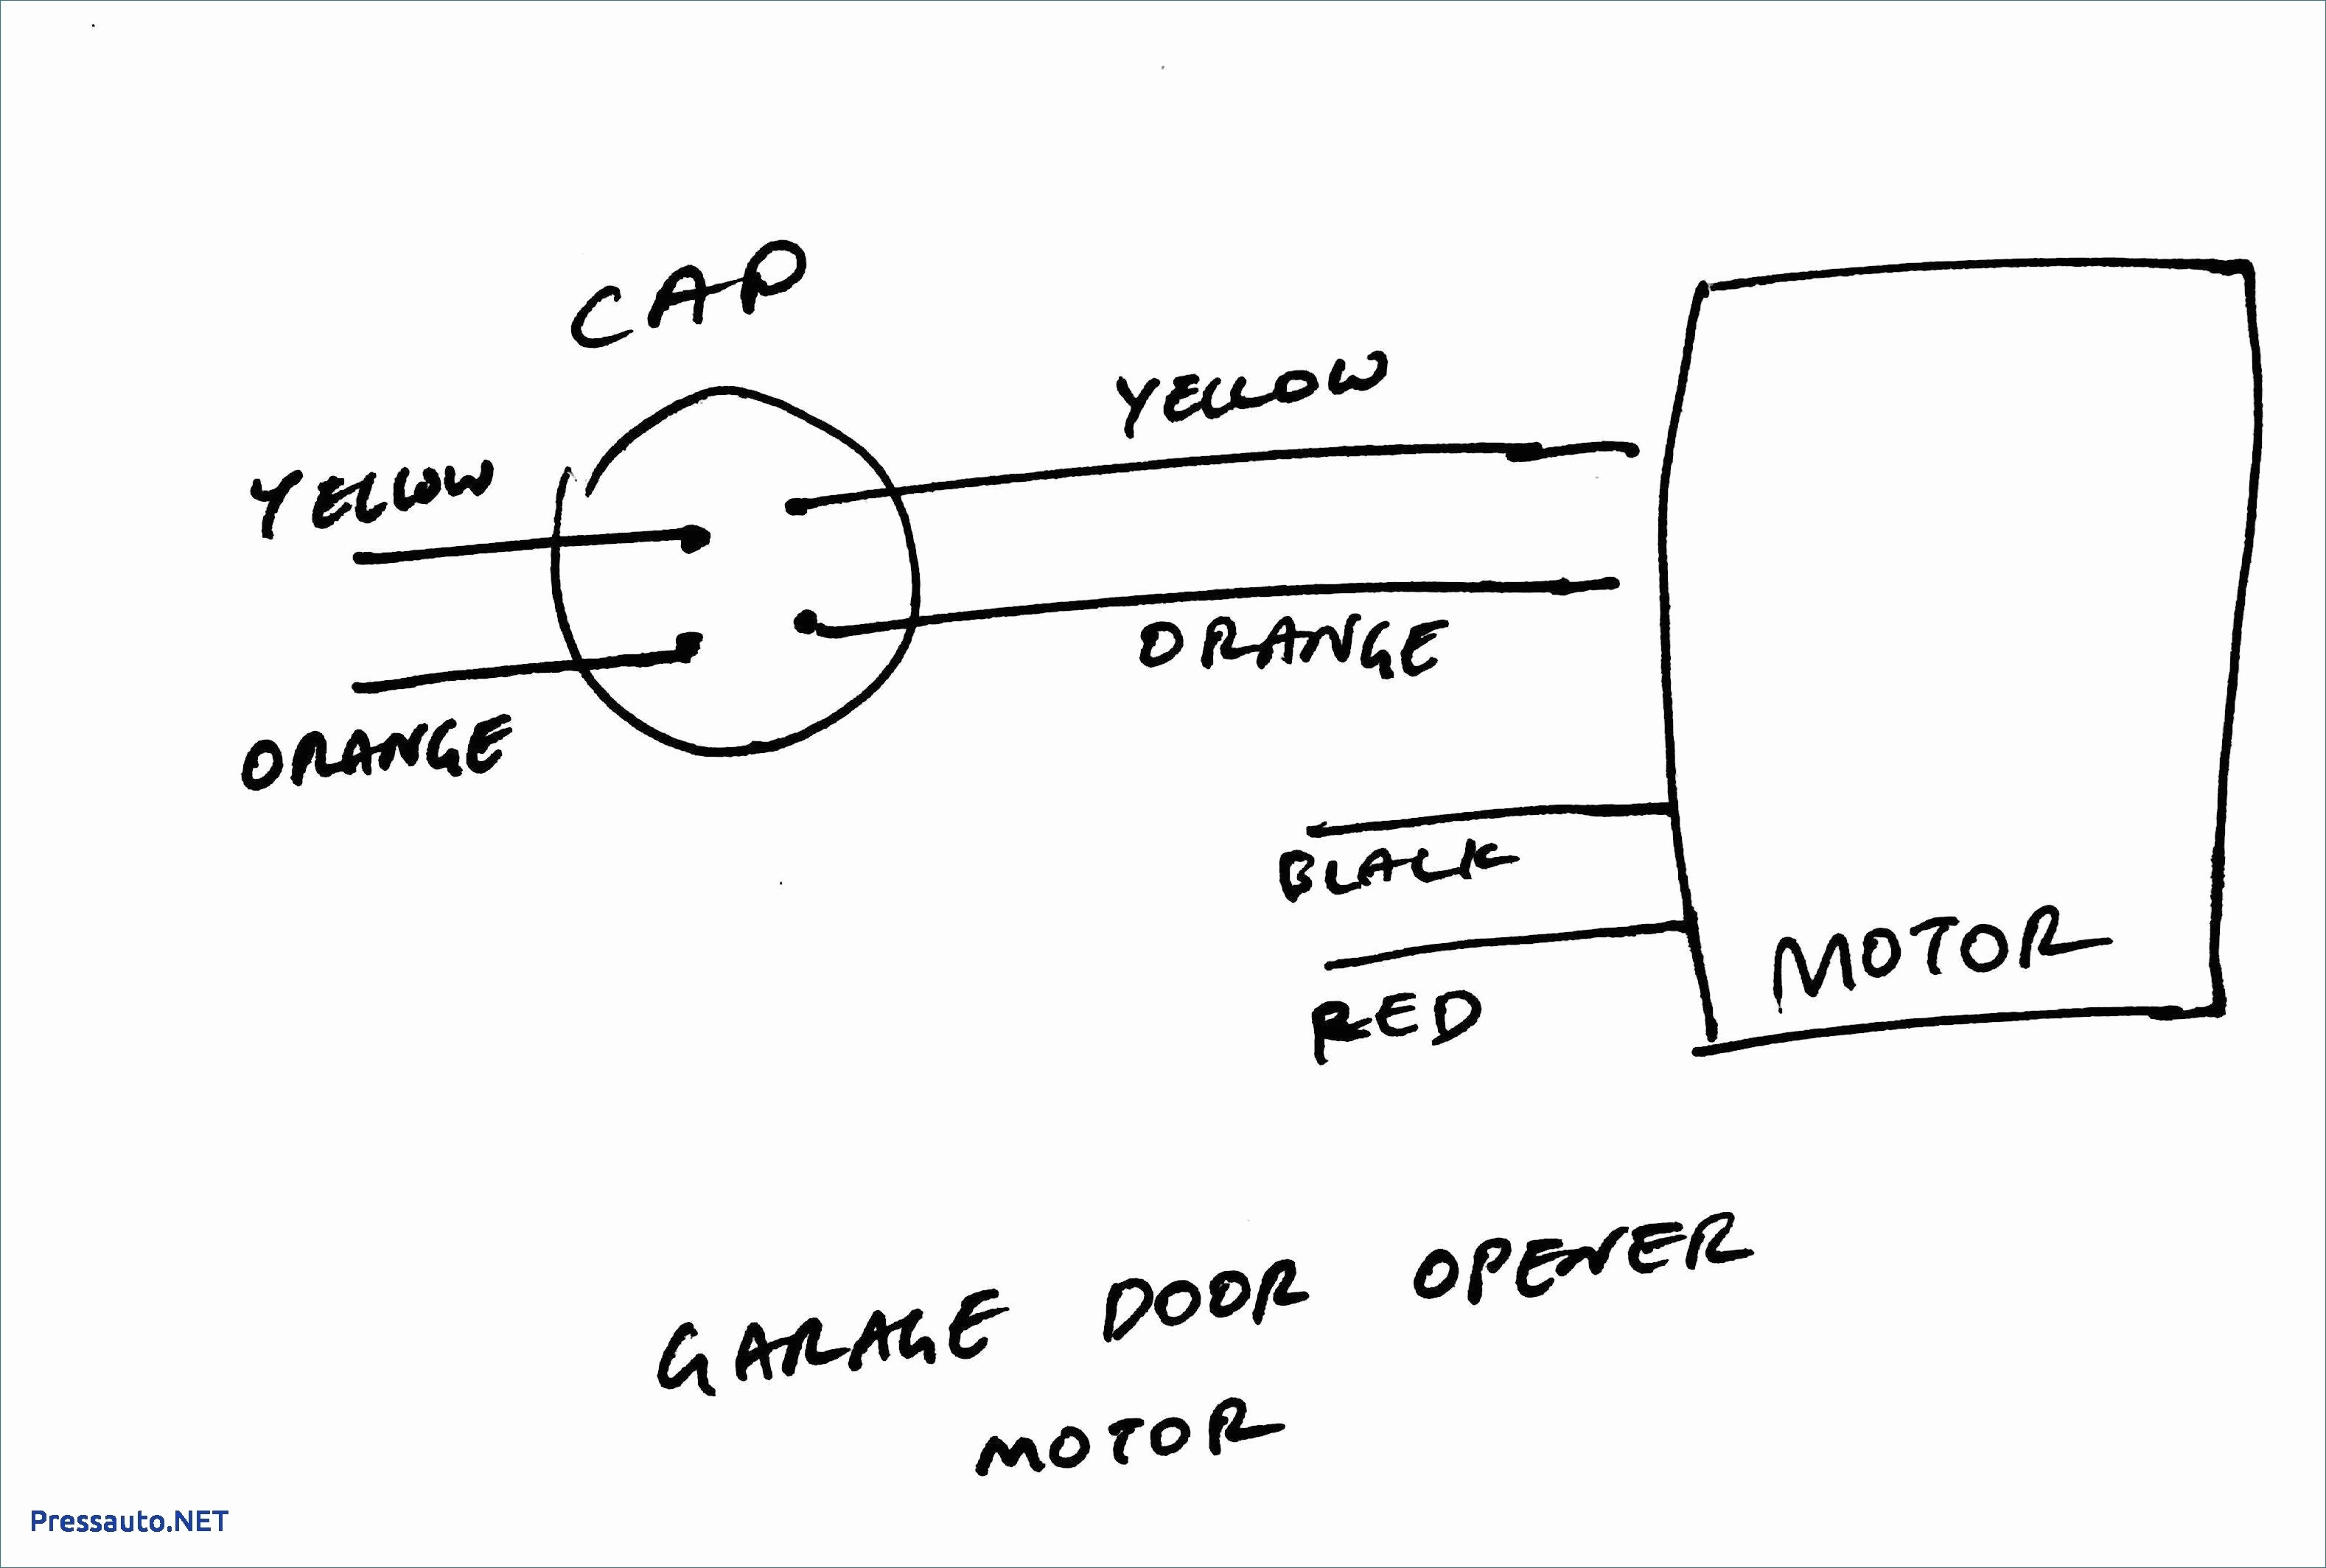 Ac Motor Wiring Diagram Electrical Wiring Diagram Marathon AC Motor Wiring  Diagram Ac Motor Wiring Diagram